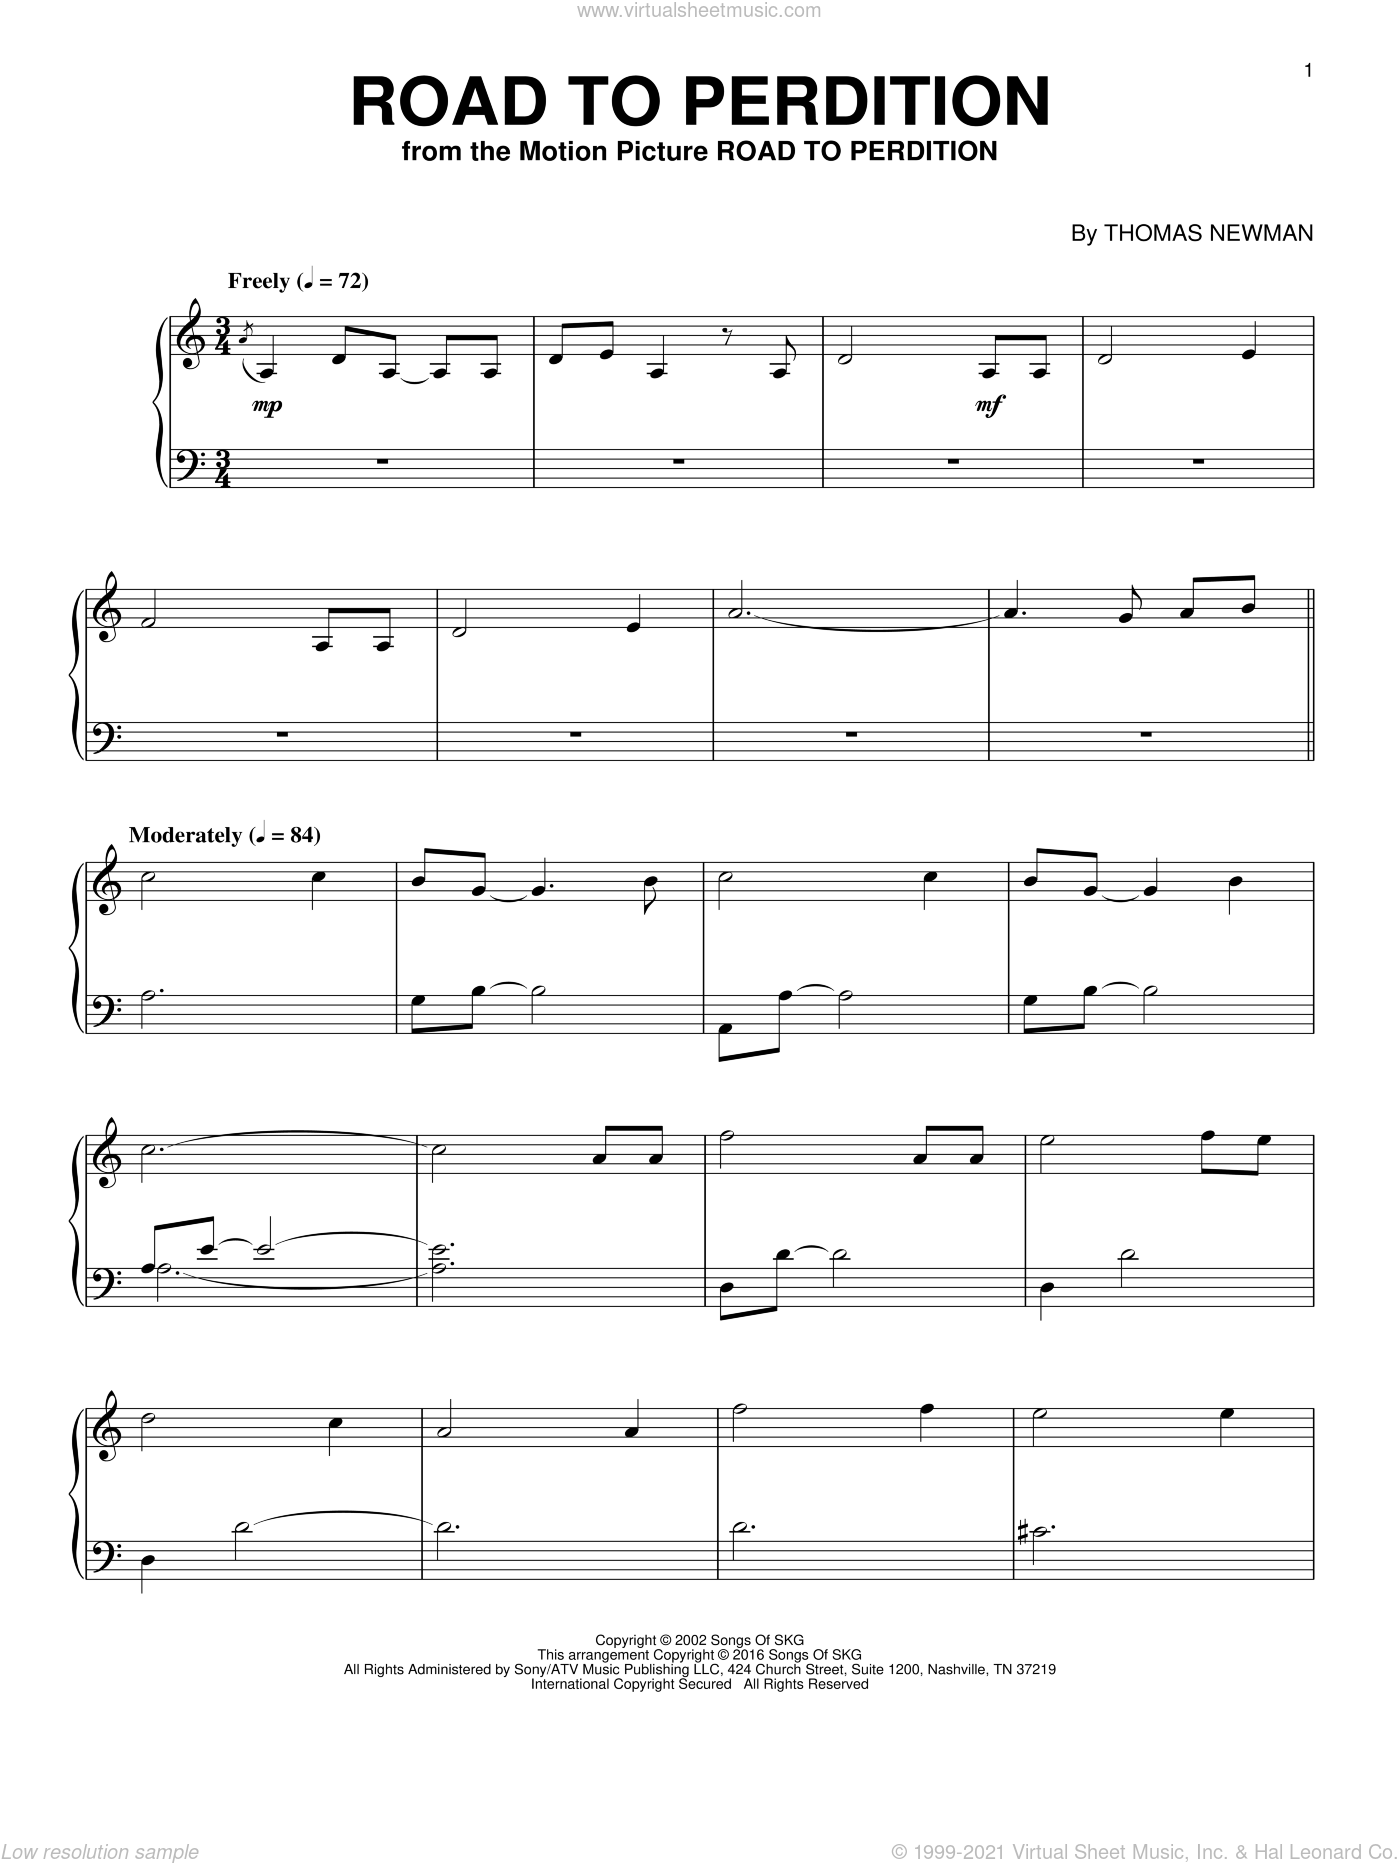 Road To Perdition sheet music for piano solo by Thomas Newman. Score Image Preview.